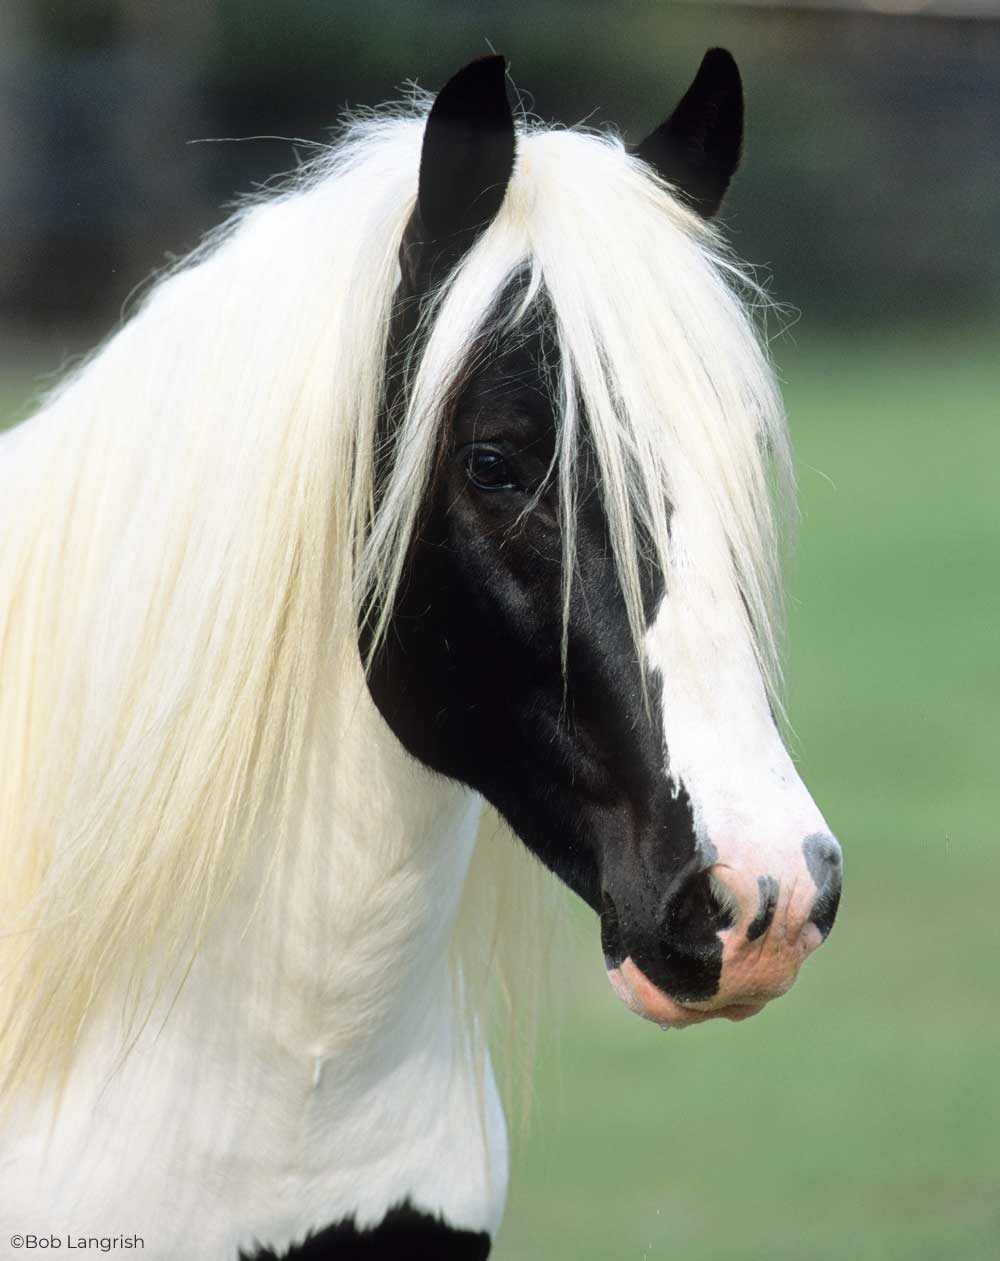 Headshot of a Gypsy Horse